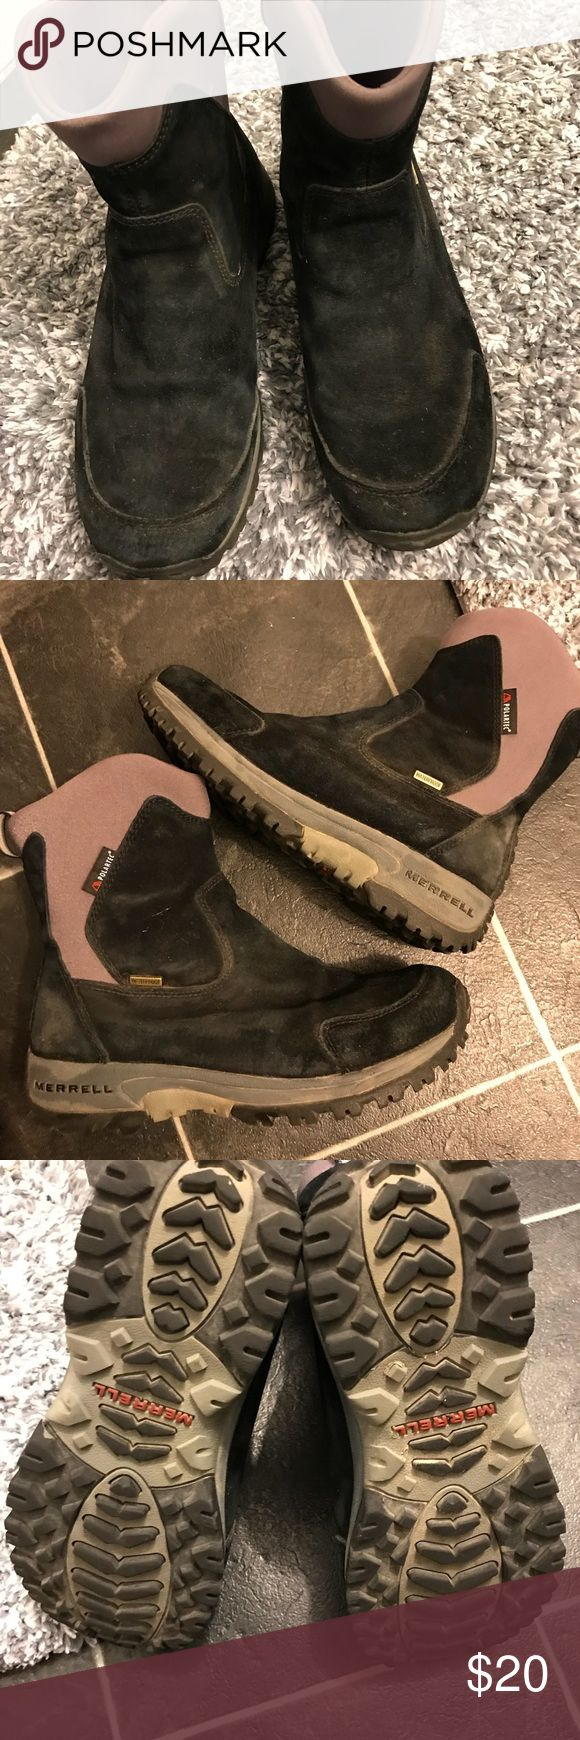 Merrill Thinsulate boots Slightly faded on suede in some areas.  Worn several times but still lots of life left.  Soles great condition.    No holes or visible damage.  Size 6.5 women's Merrell Shoes Winter & Rain Boots